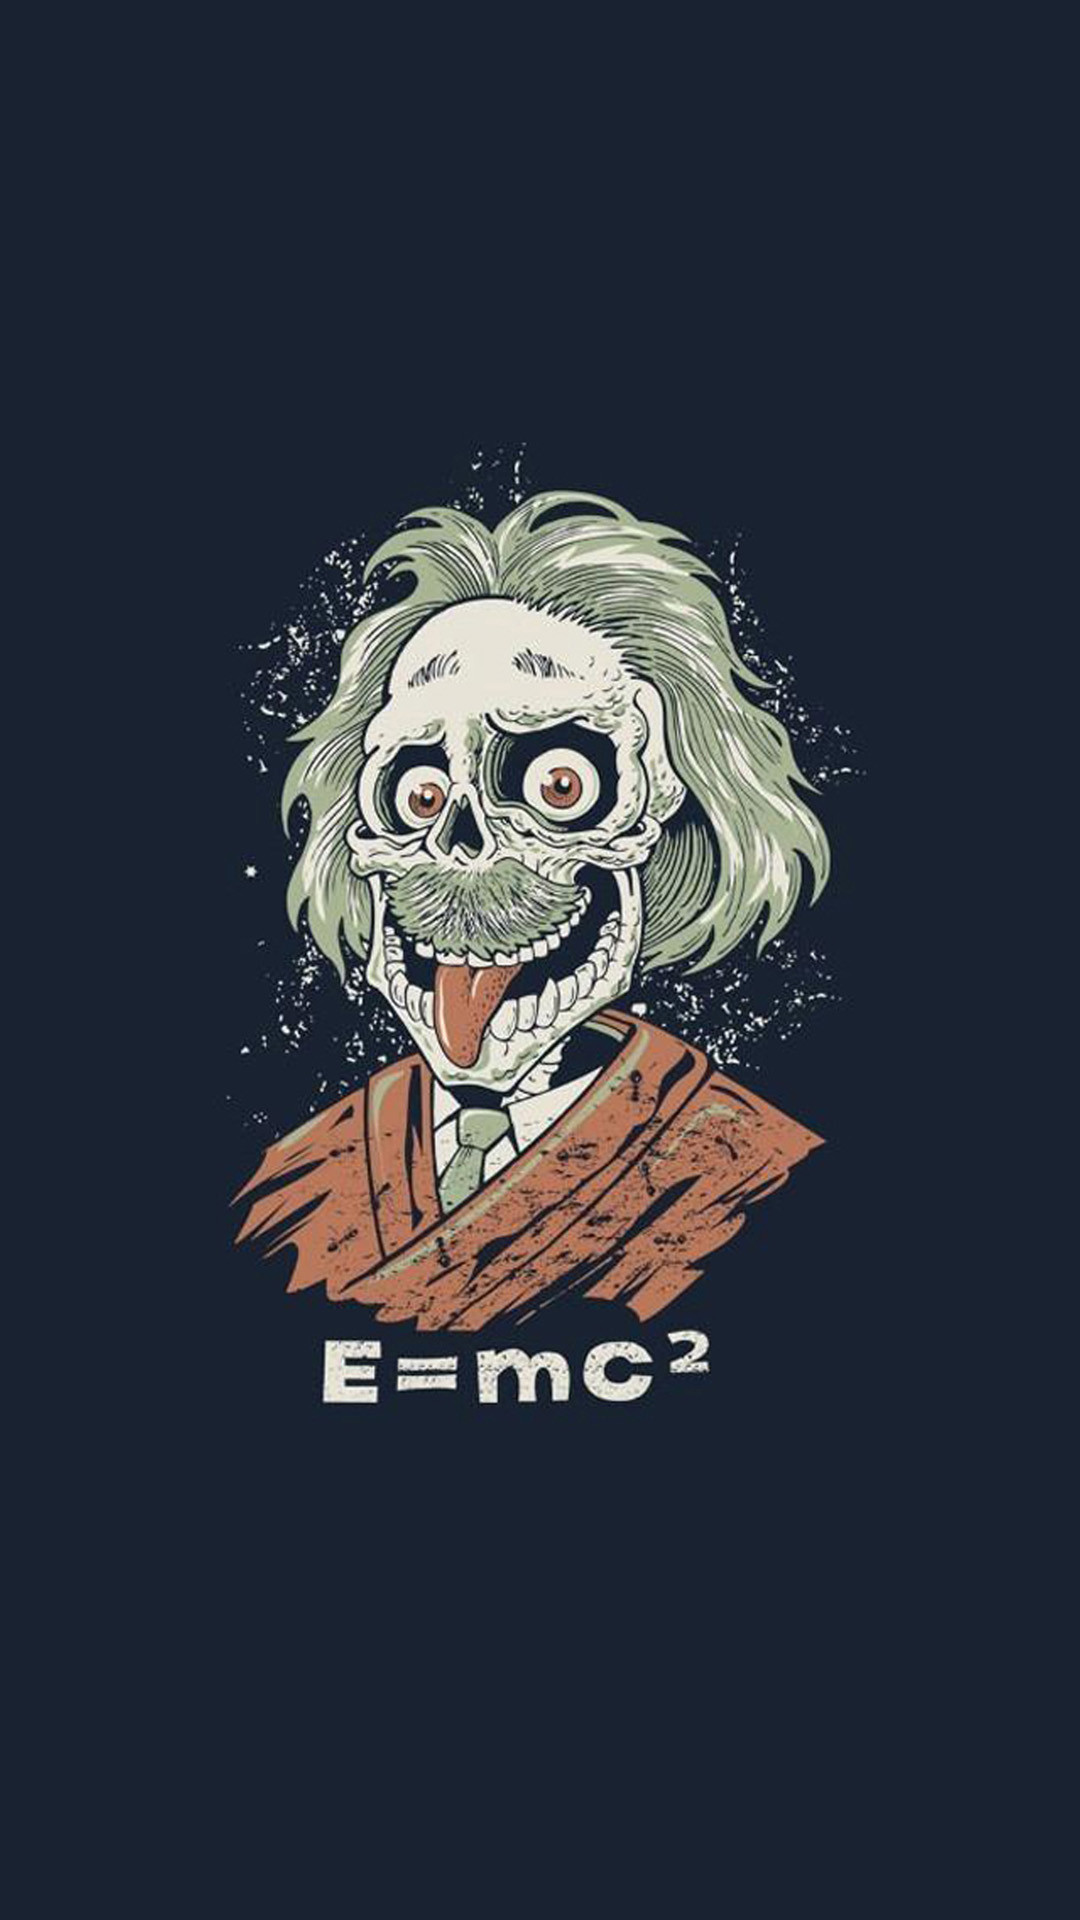 1080x1920 Funny Albert Einstein Caricature HD Wallpaper iPhone 6 plus